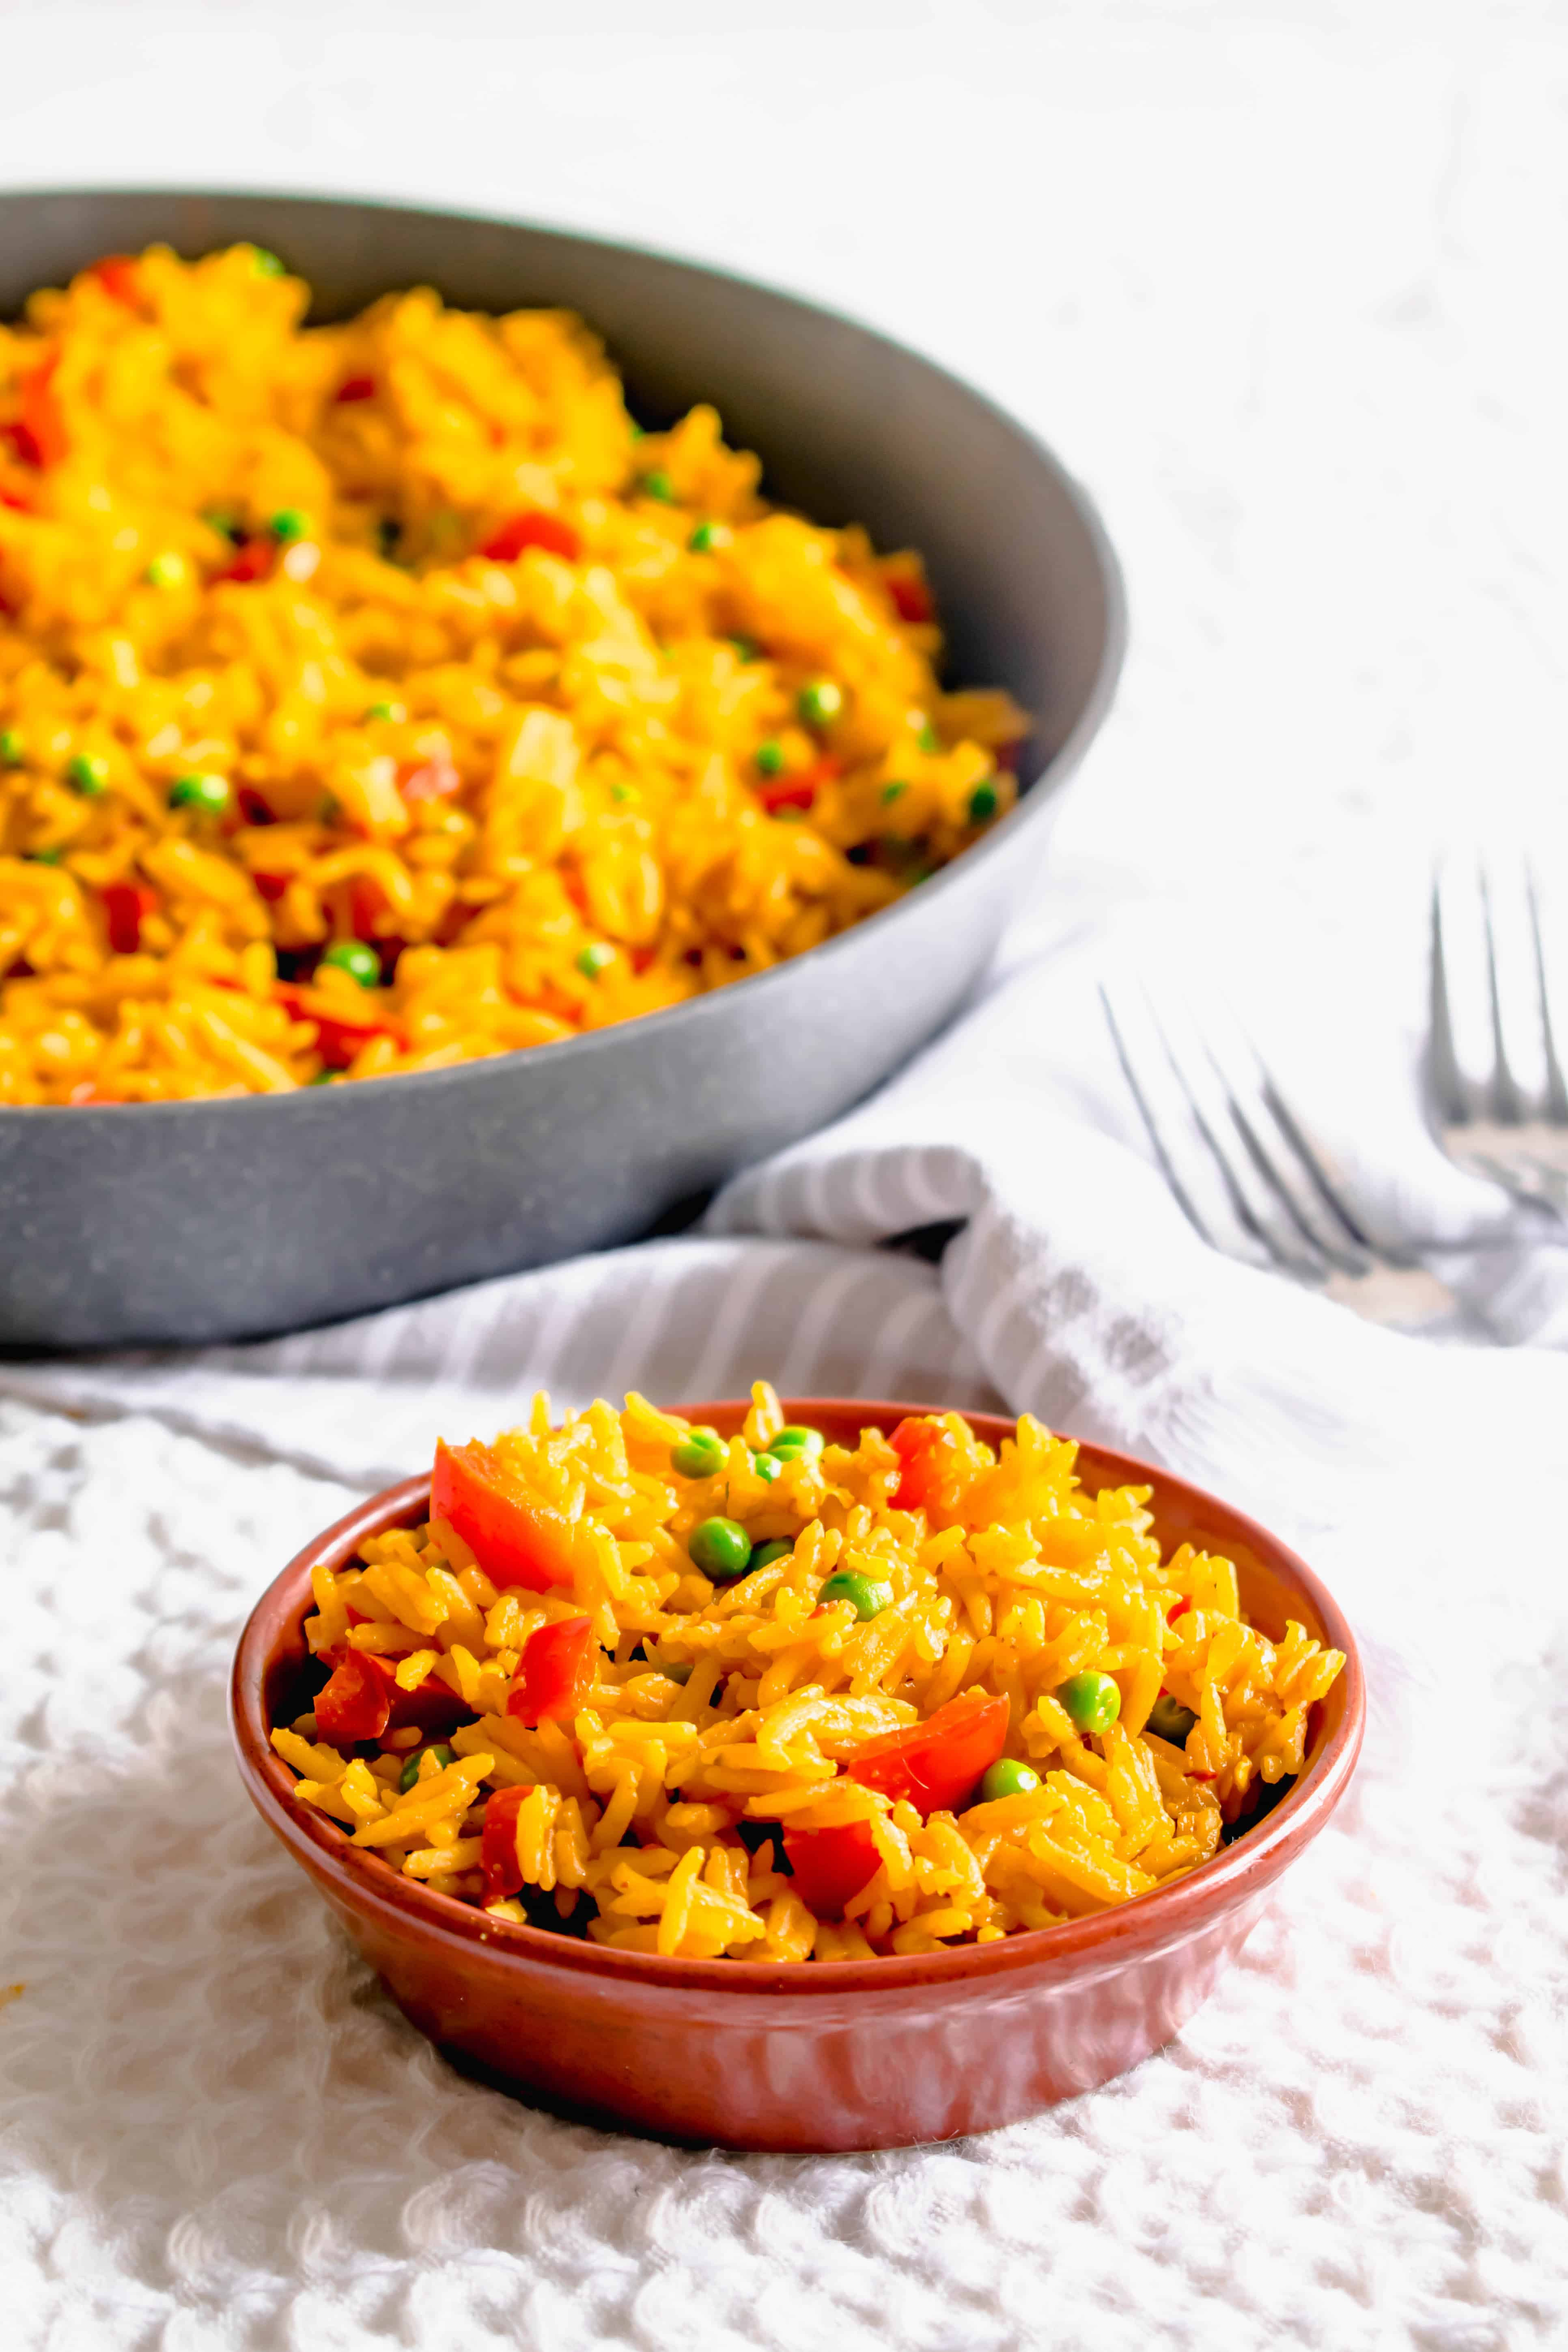 Nandos Spicy Rice Recipe